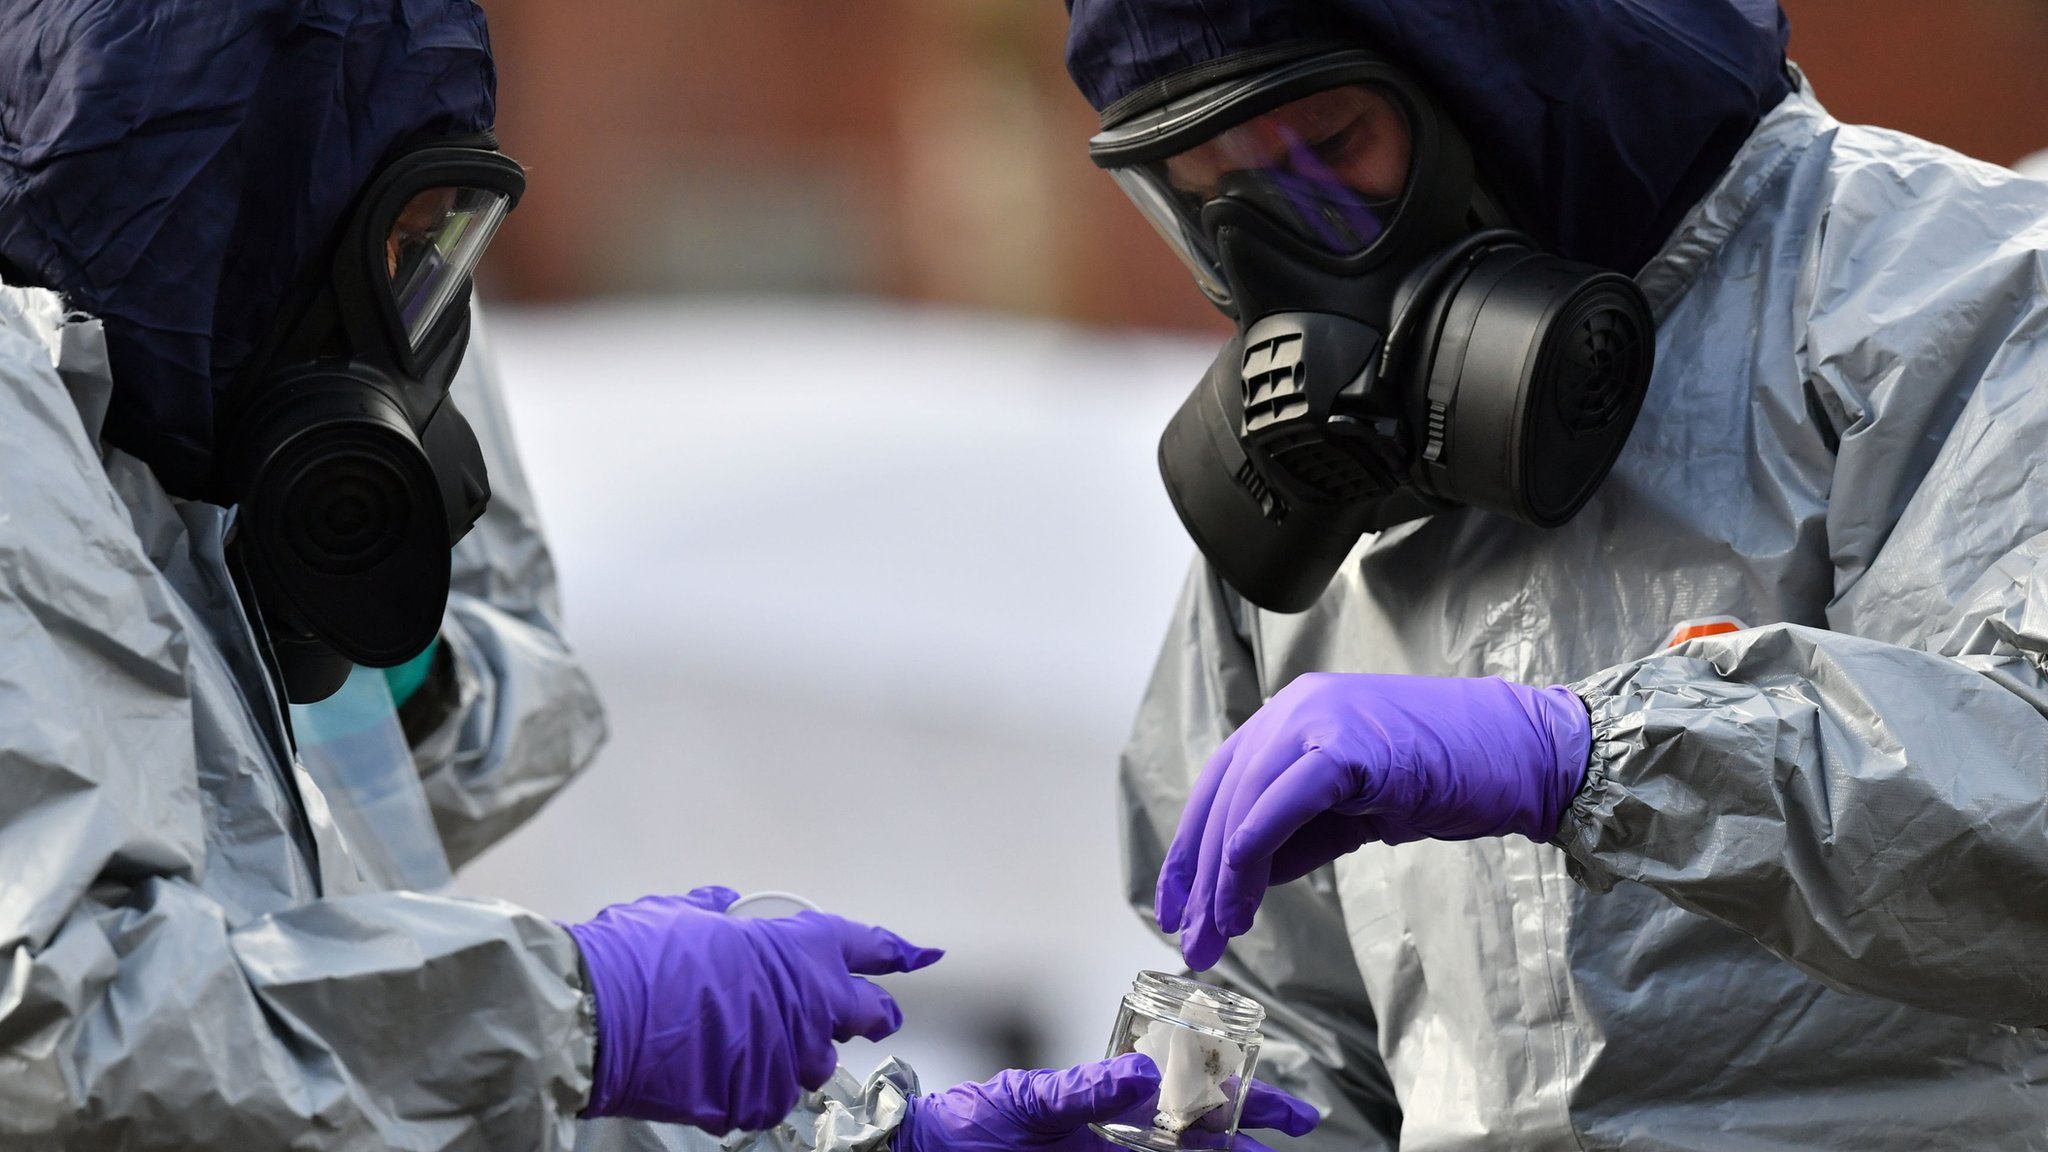 Russia spy poisoning: 23 UK diplomats expelled from Moscow